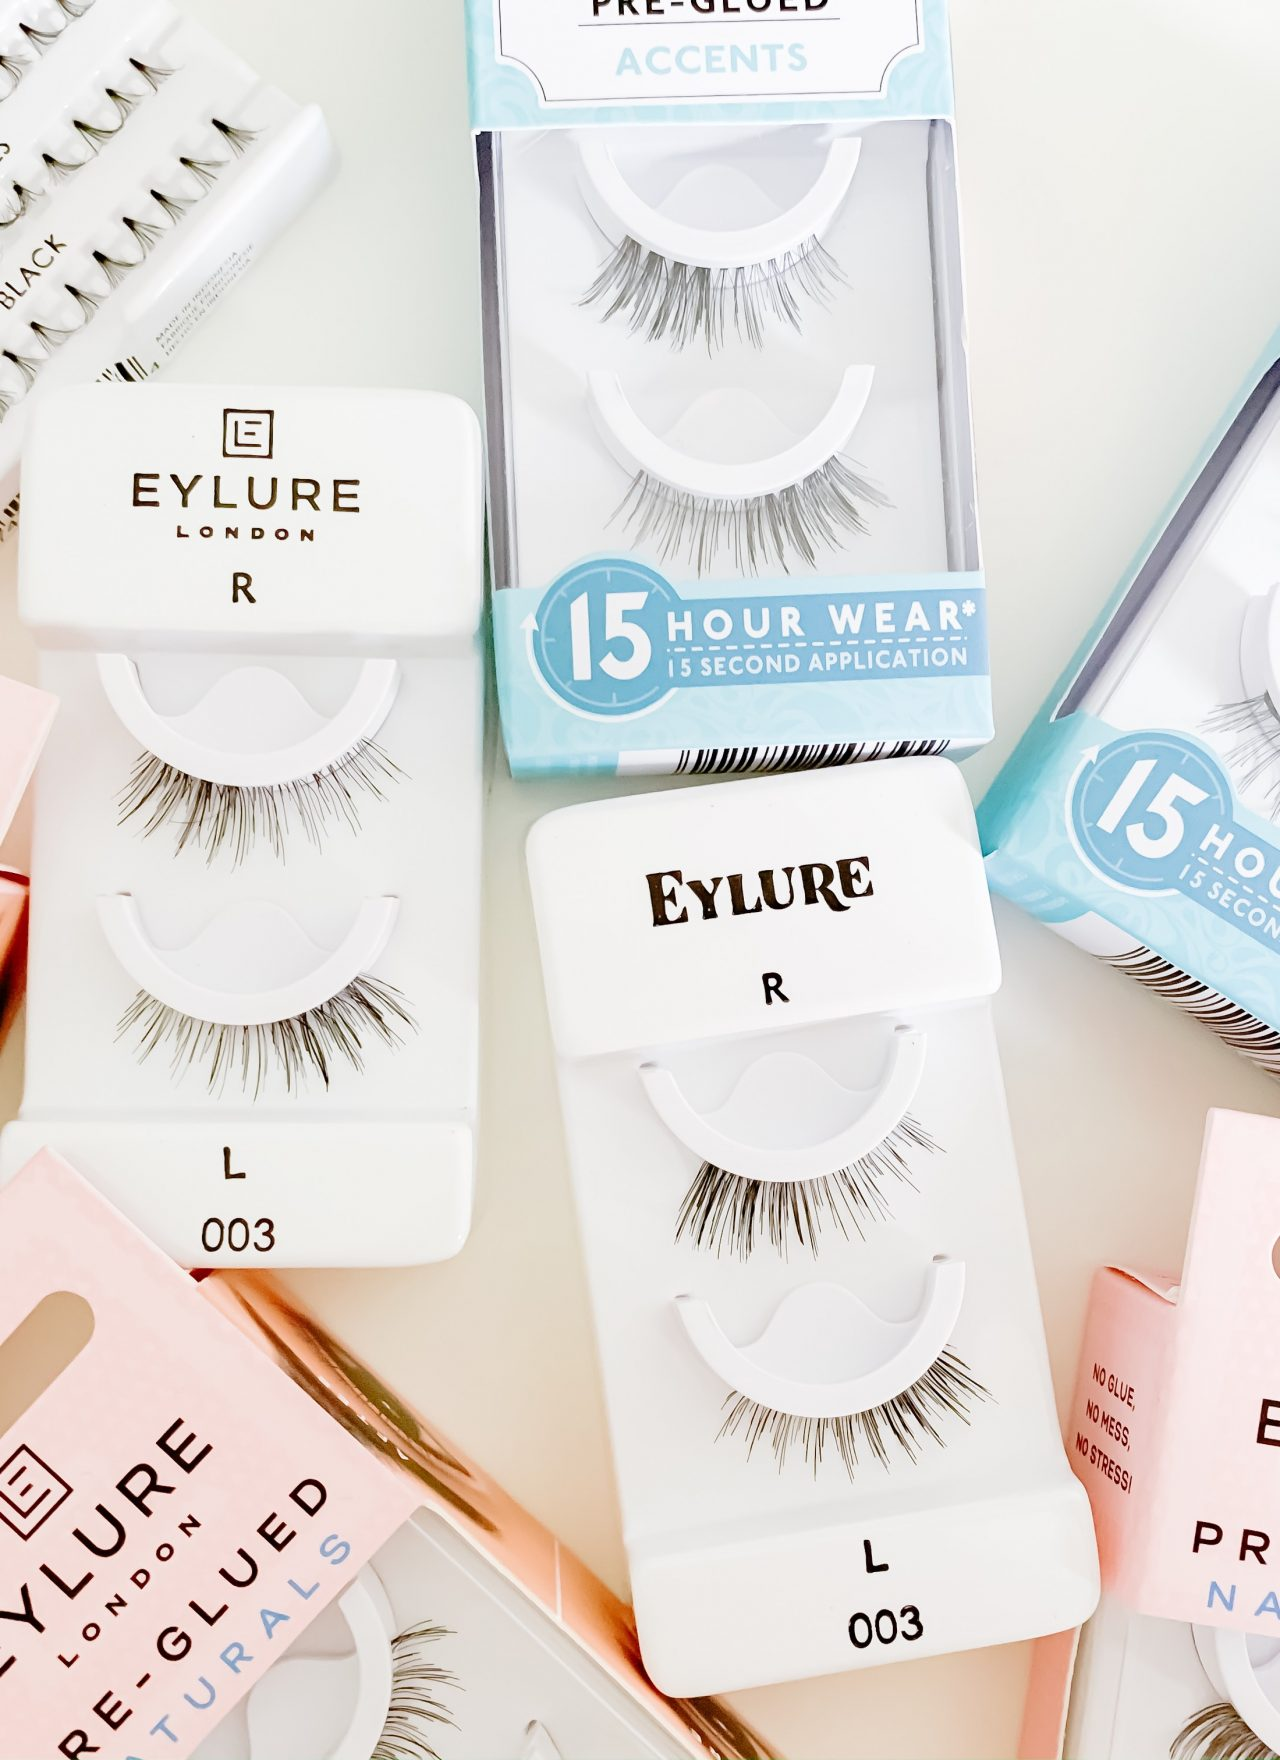 THE EASIEST WAY TO APPLY FALSE EYELASHES | I am sharing my best tips and the easiest way to apply false eyelashes on the blog today, along with my 2 favorite kinds of false lashes.